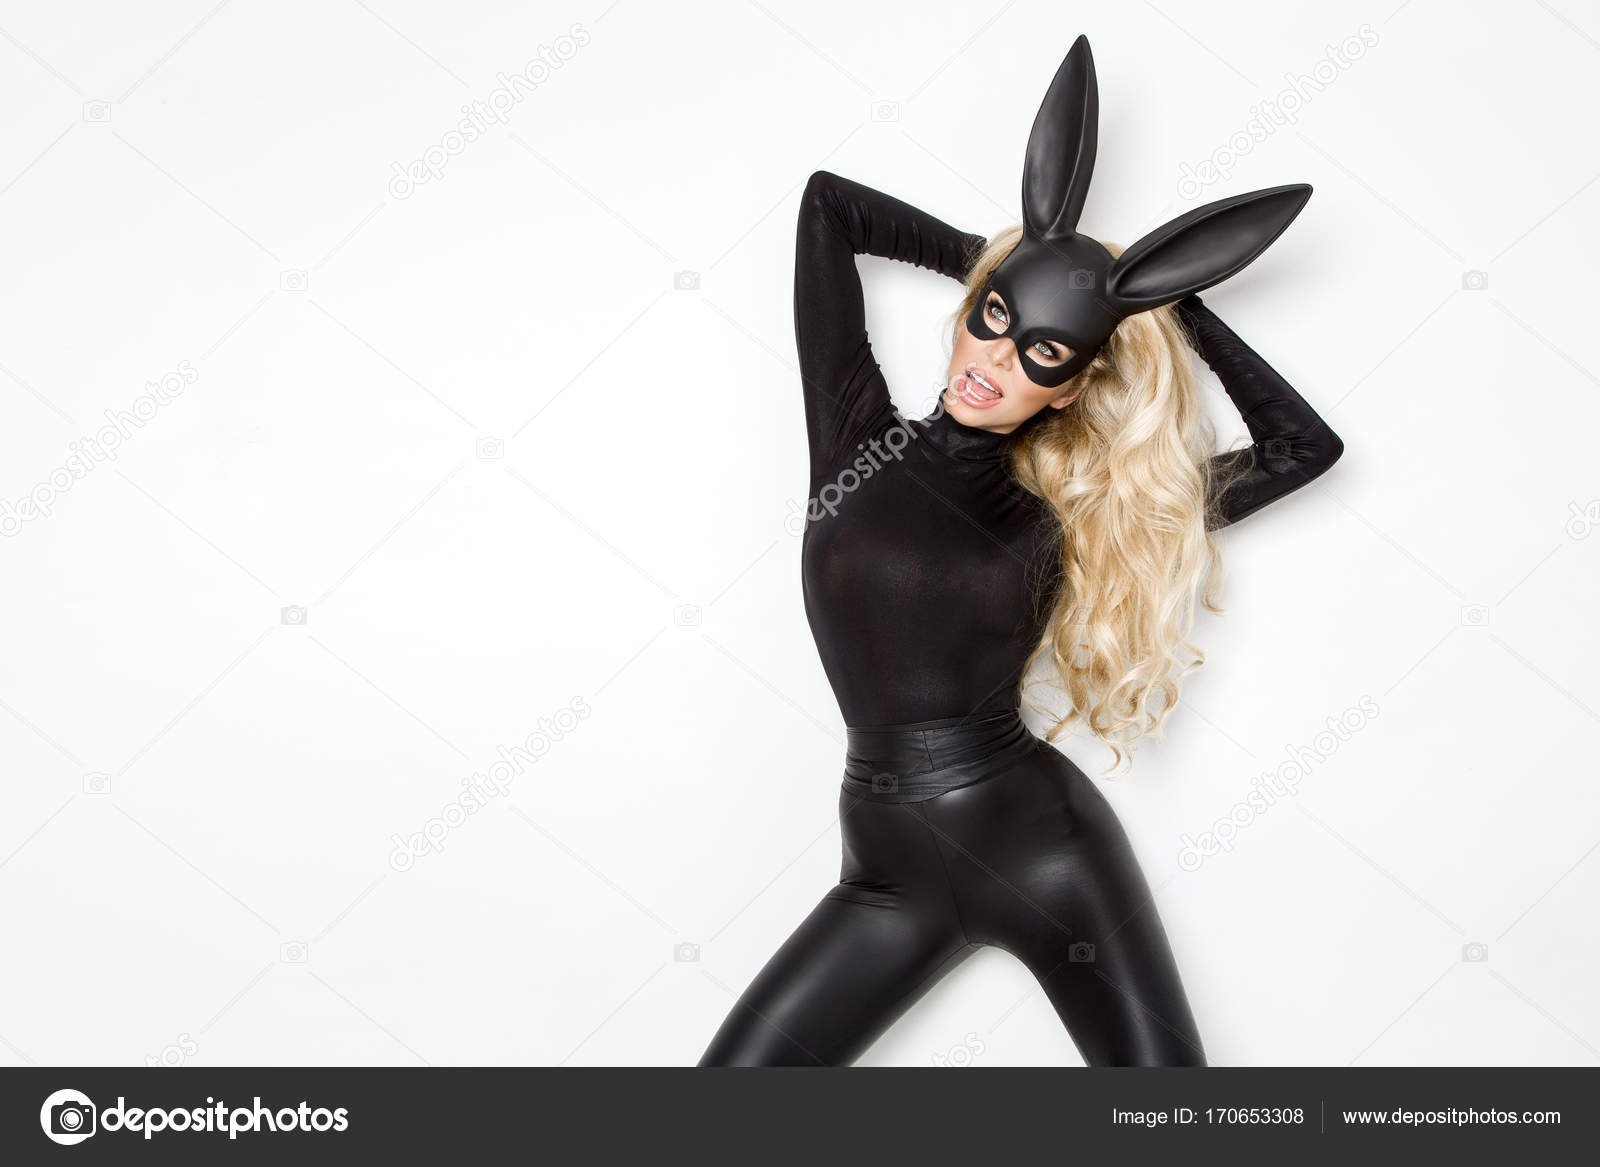 Beautiful young woman in Halloween, tattoo costume and black bunny mask,  standing on white background– stock image